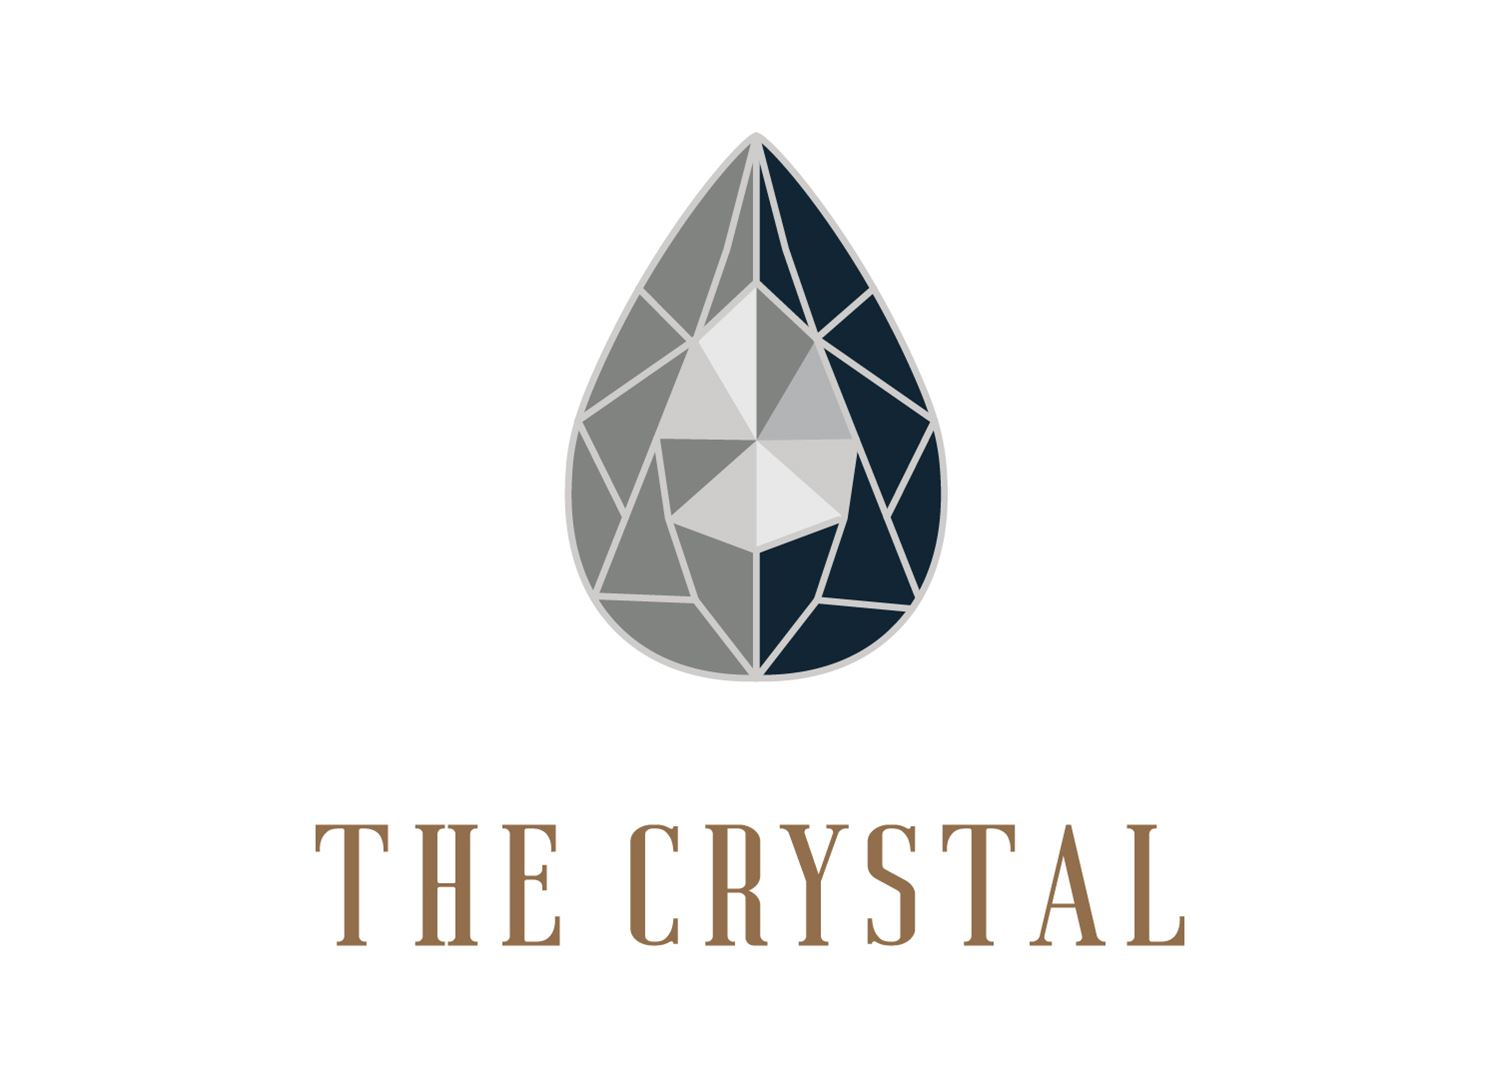 The Crystal By Konic Homes – Prices, Availability, Plans